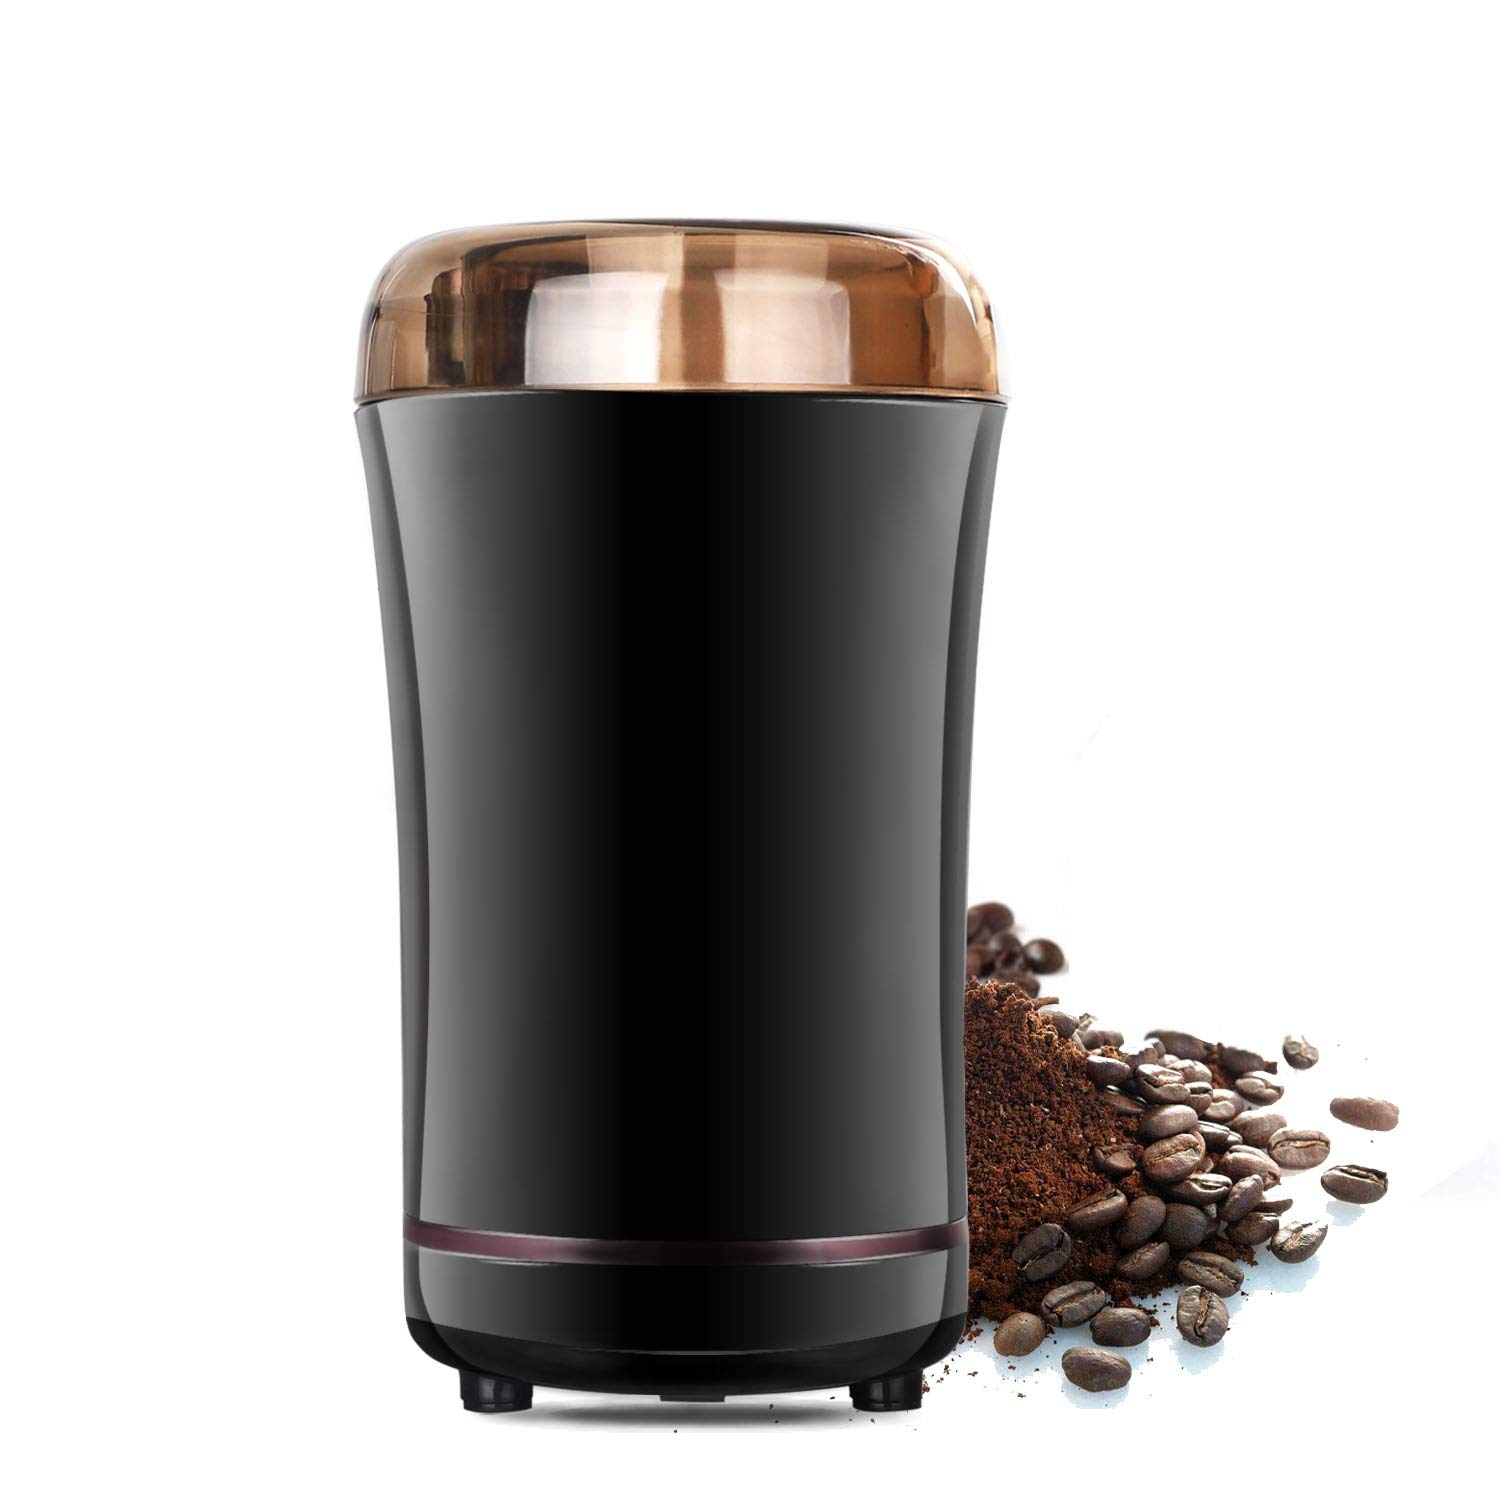 Coffee Grinder, Travelnote Electric Coffee Bean Grinder with Stainless Steel Blades for Coffee Beans Spice Nuts Grain, Up to 12Cups